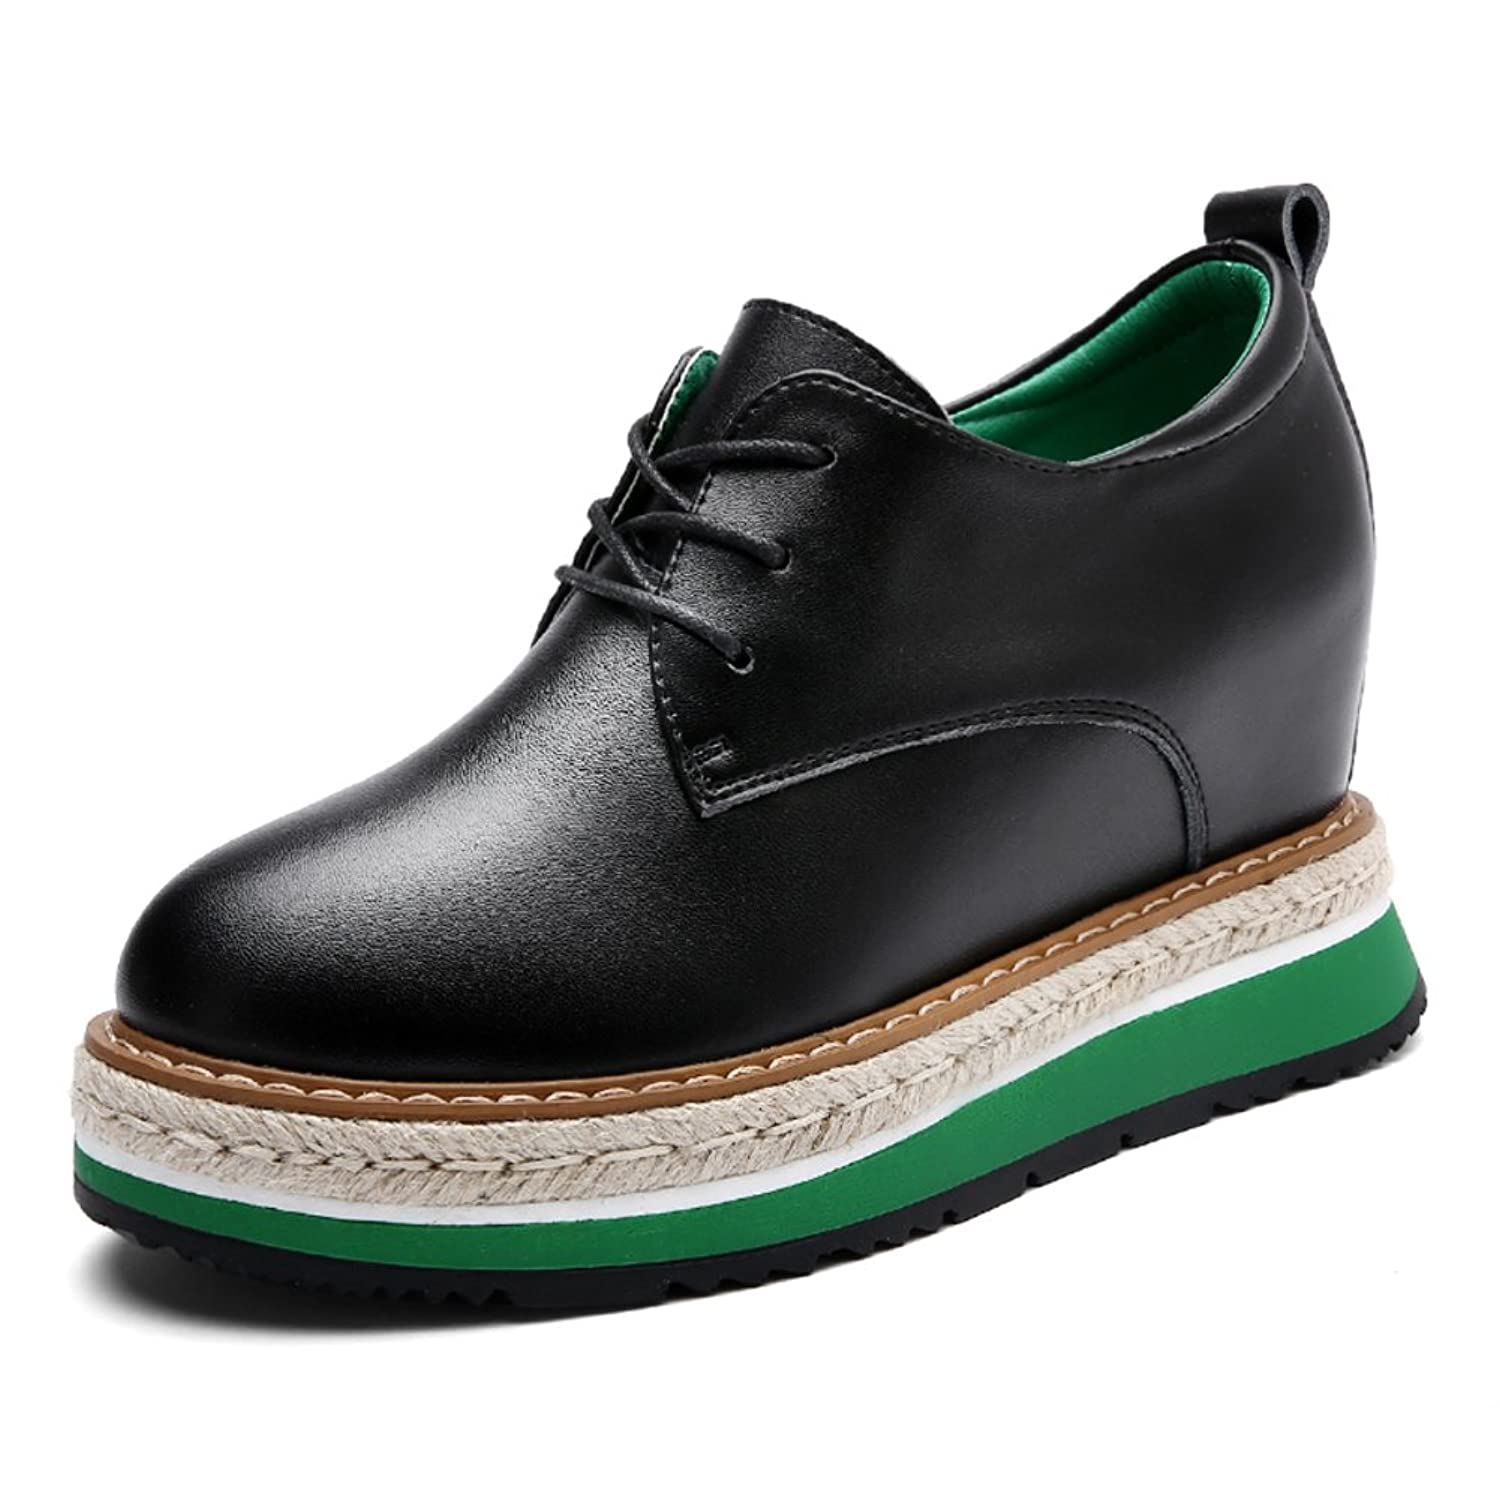 80%OFF Inner increase Women ShoesWind Of England,Platform